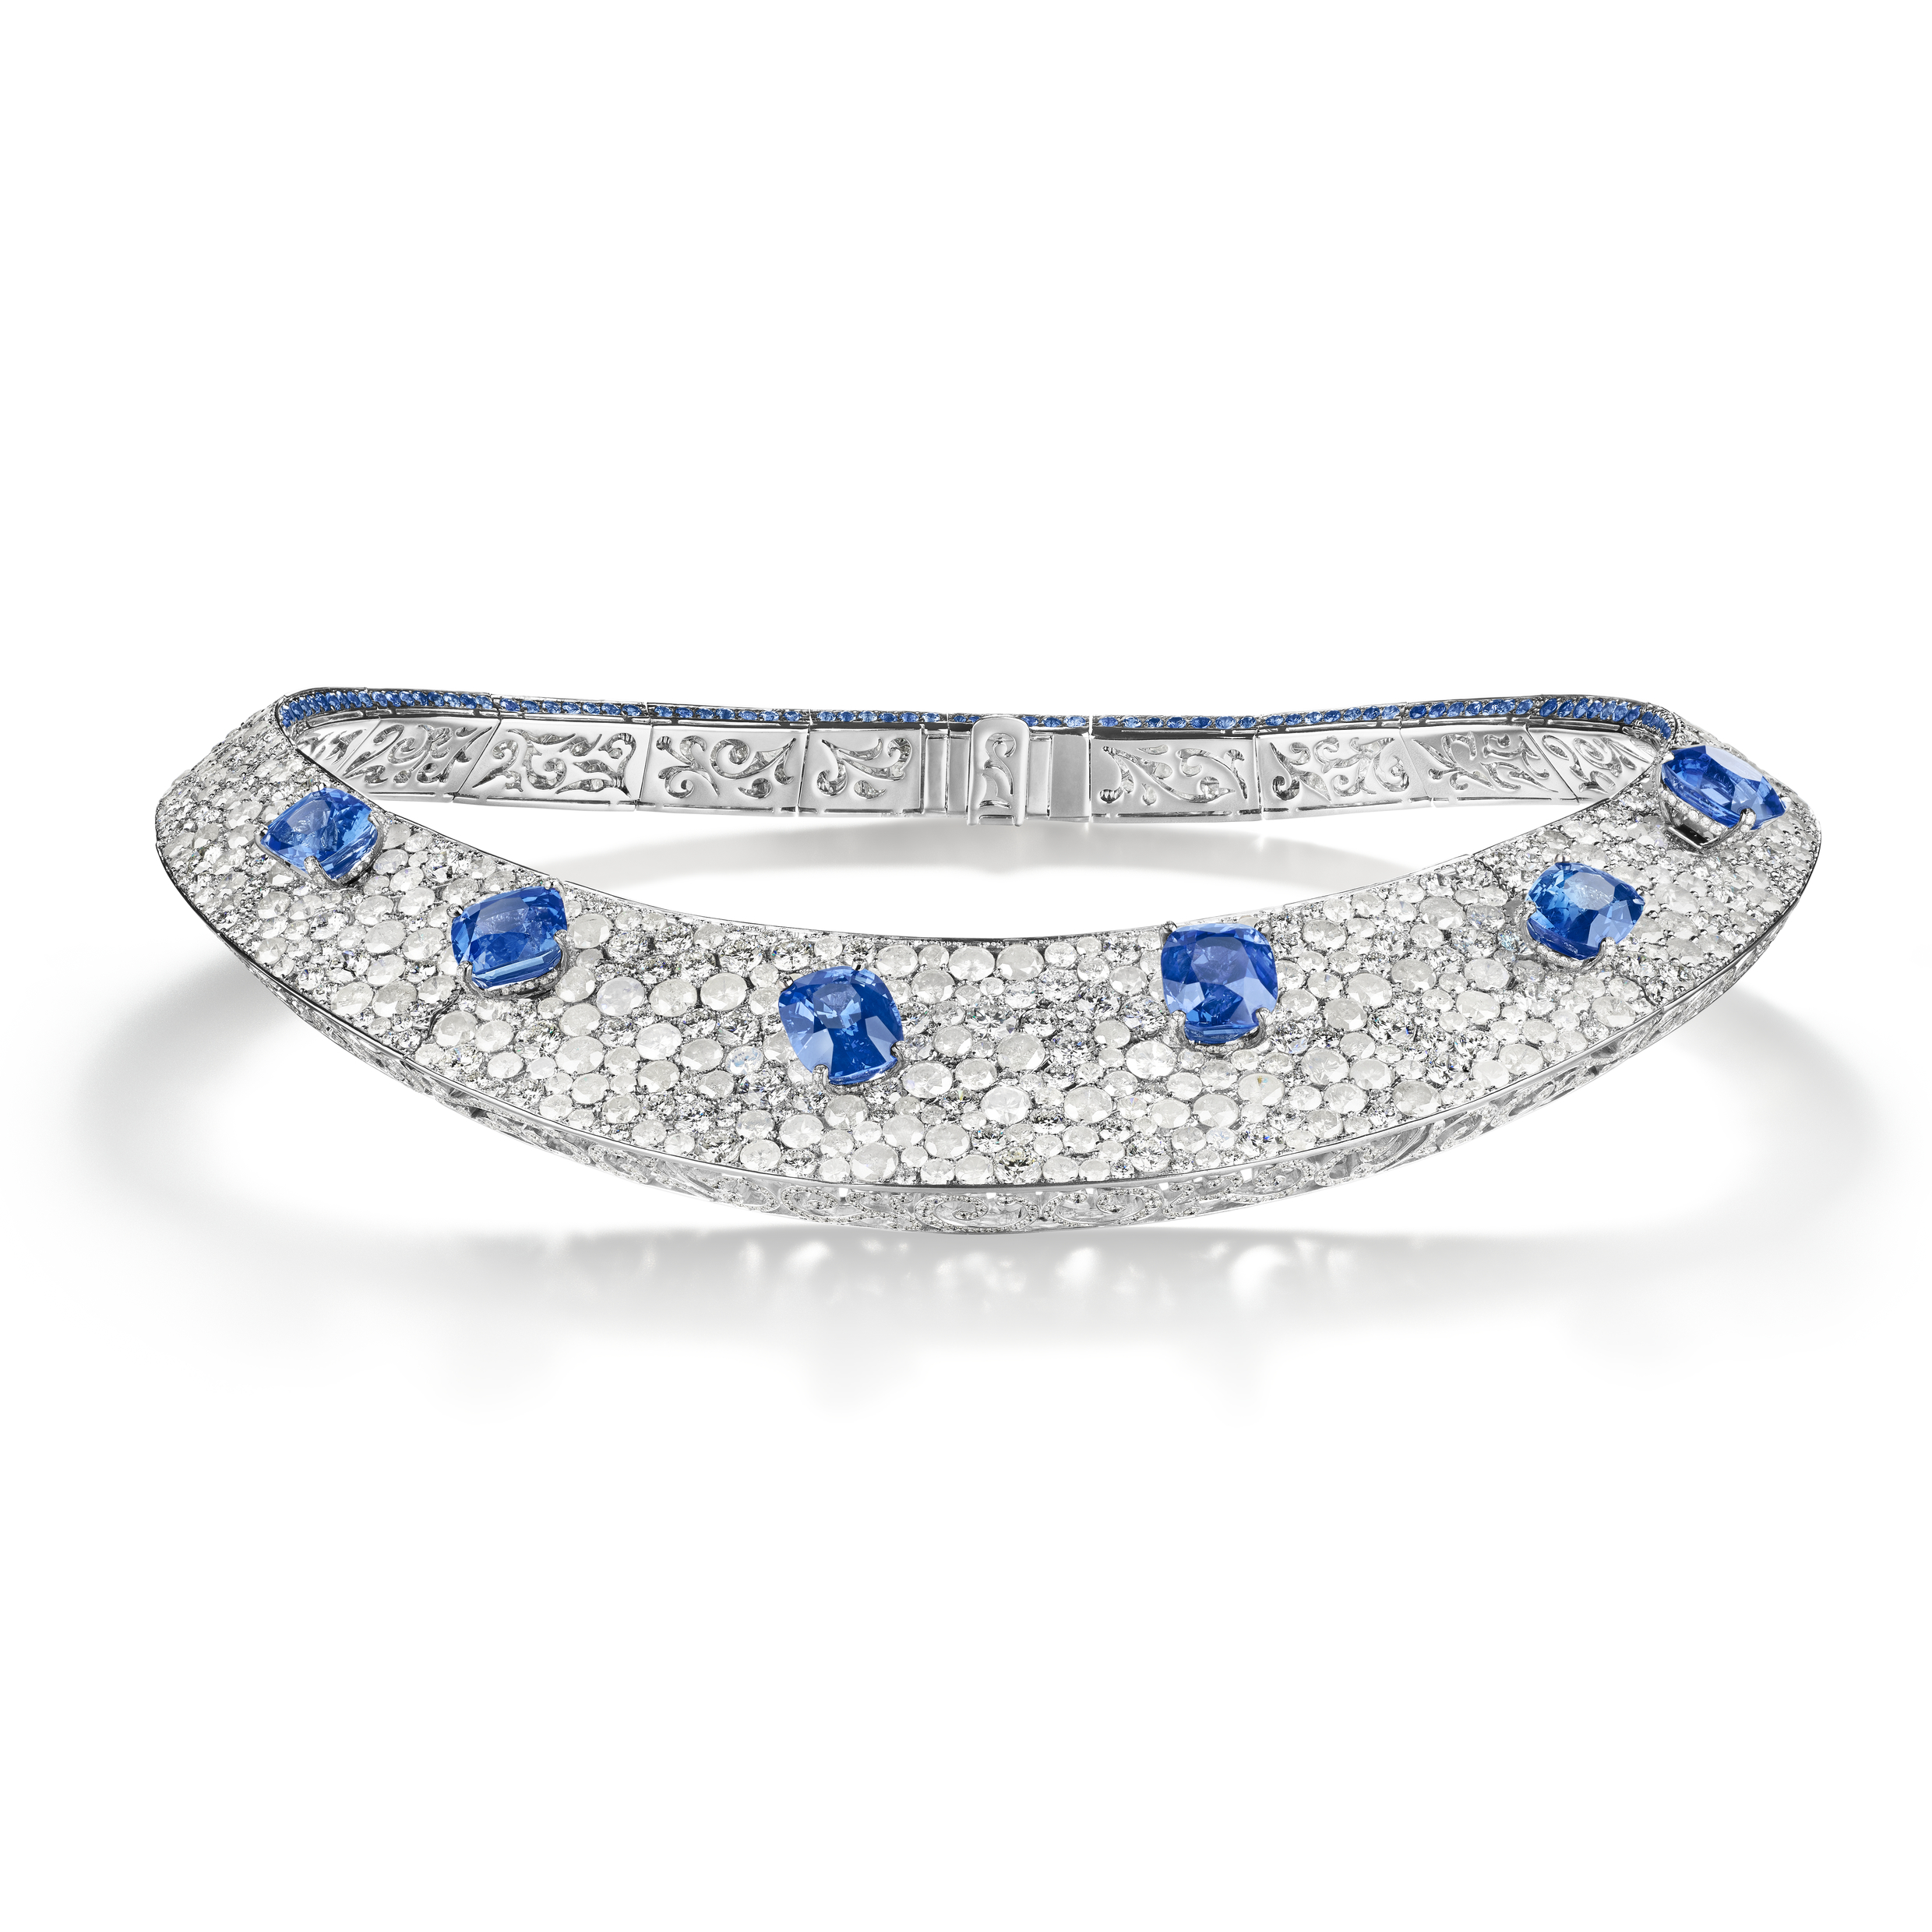 de Grisogono - High Jewellery Diamond and Sapphire Necklace